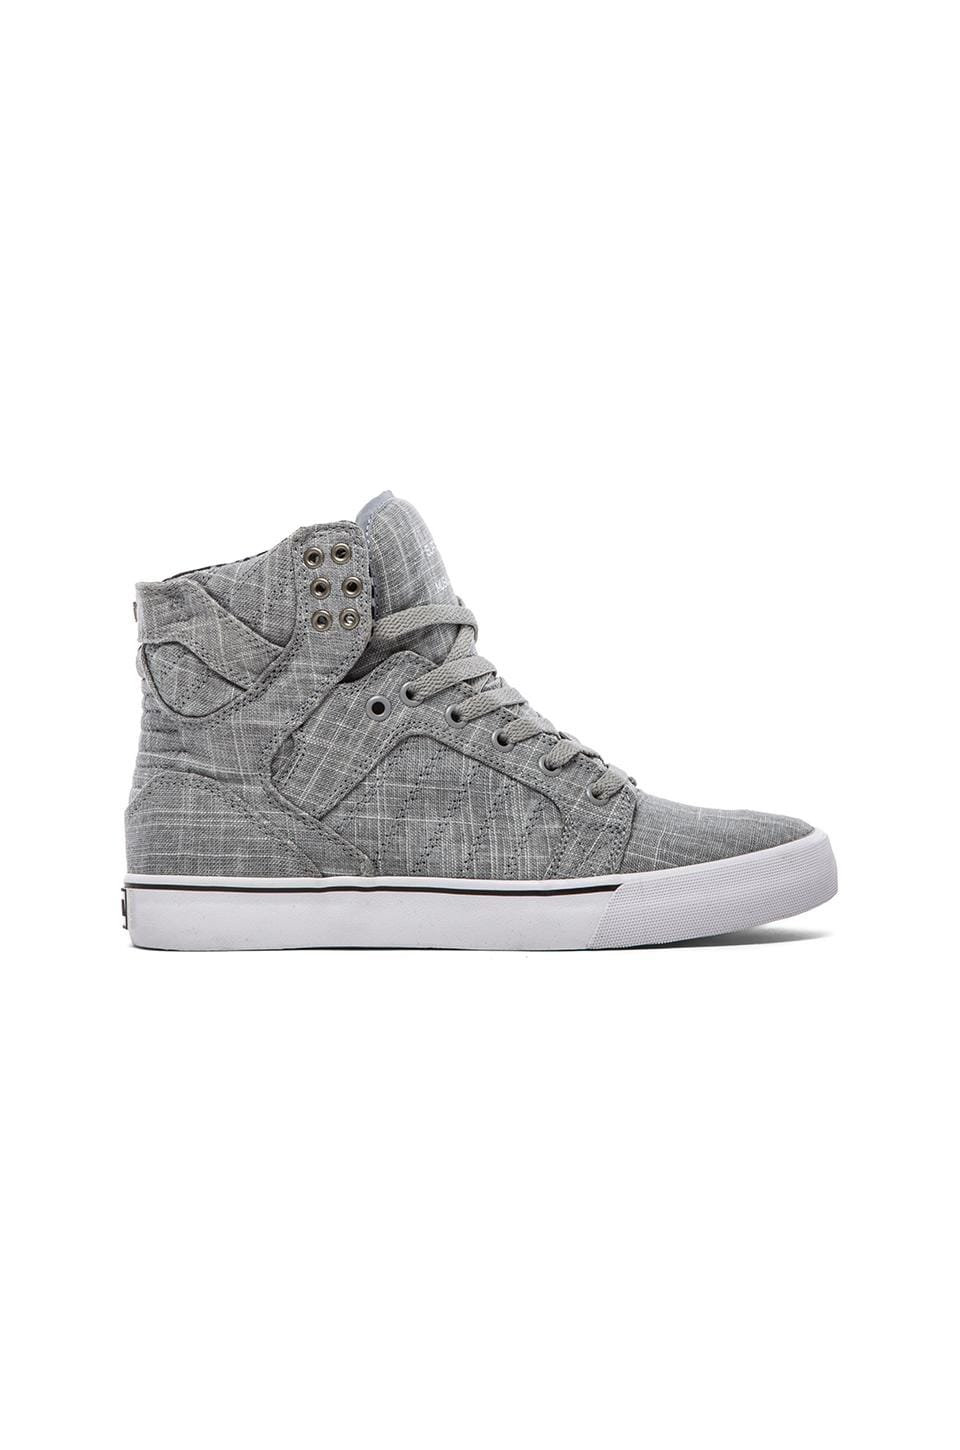 Supra Skytop in Grey & White